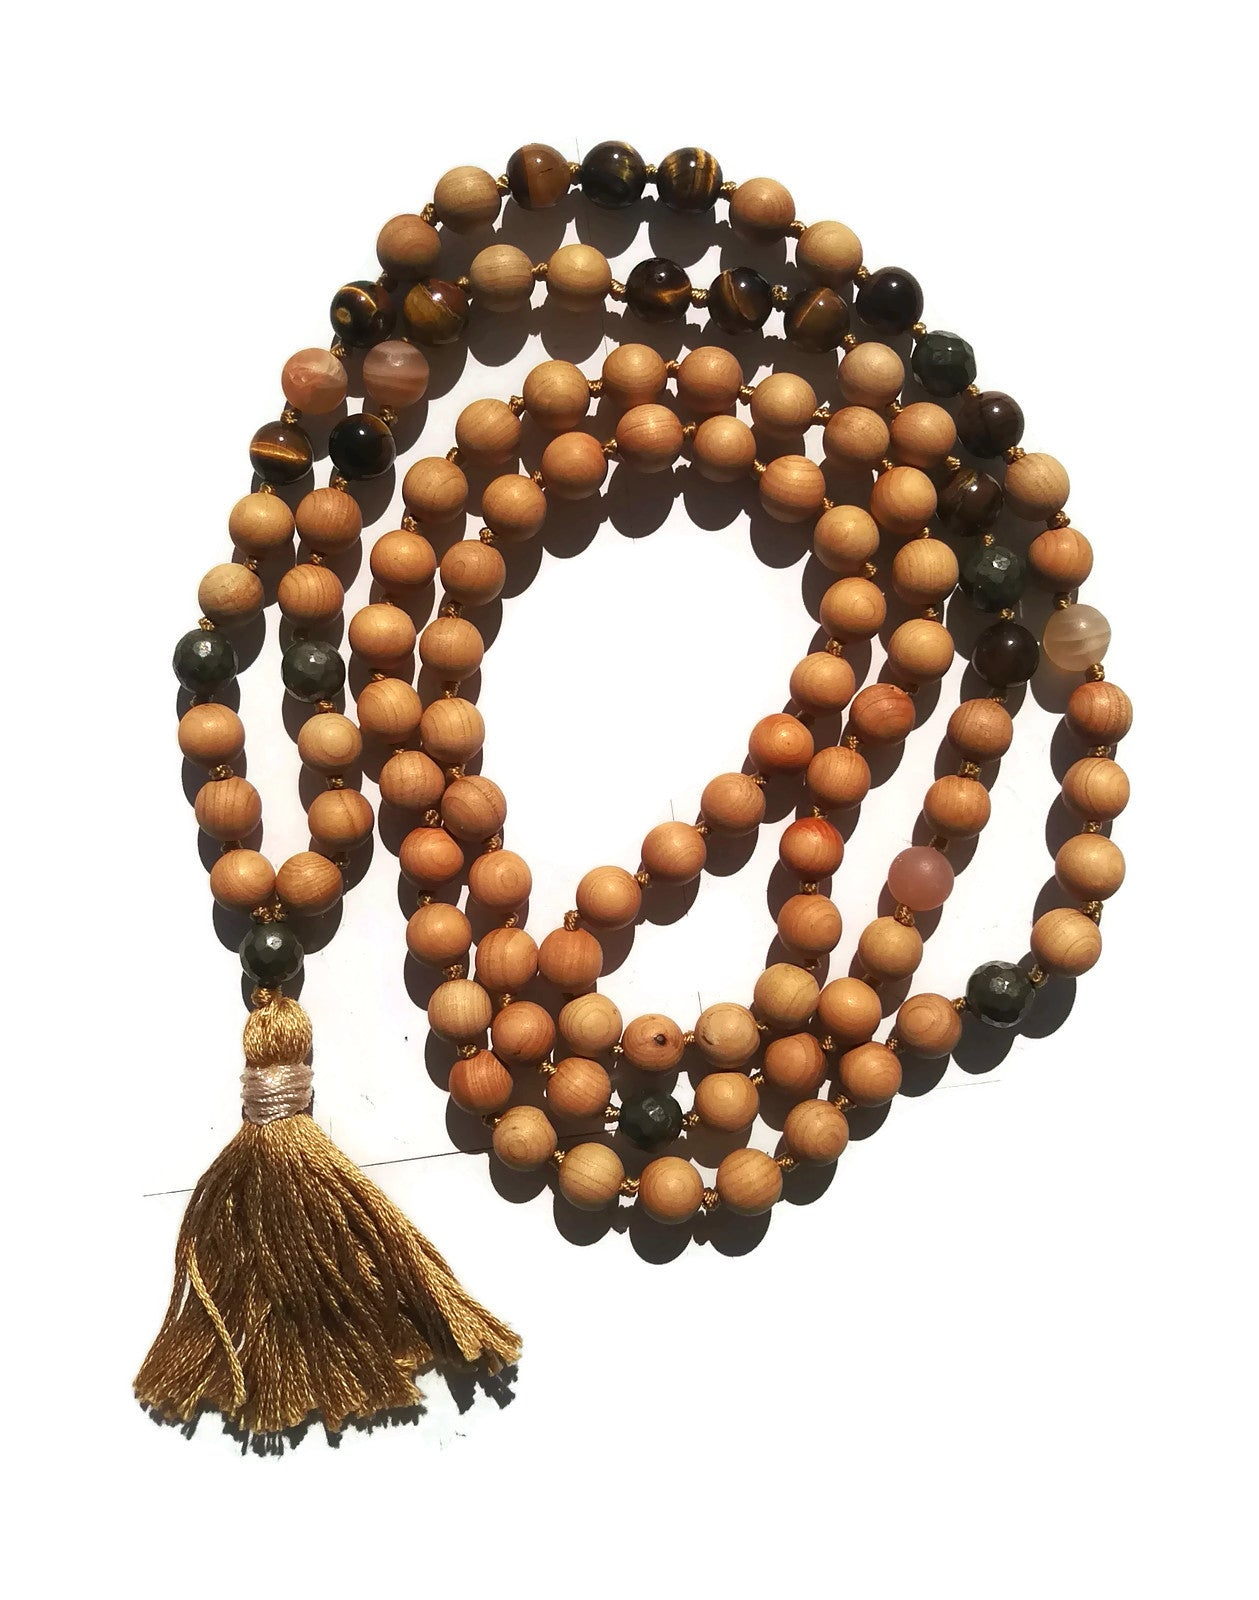 Pure Collection 8mm Cypress Tiger Eye Sunstone Pyrite Traditional Hand Knotted 108 Bead Meditation Mala Necklace Solar Plexus Chakra Energy